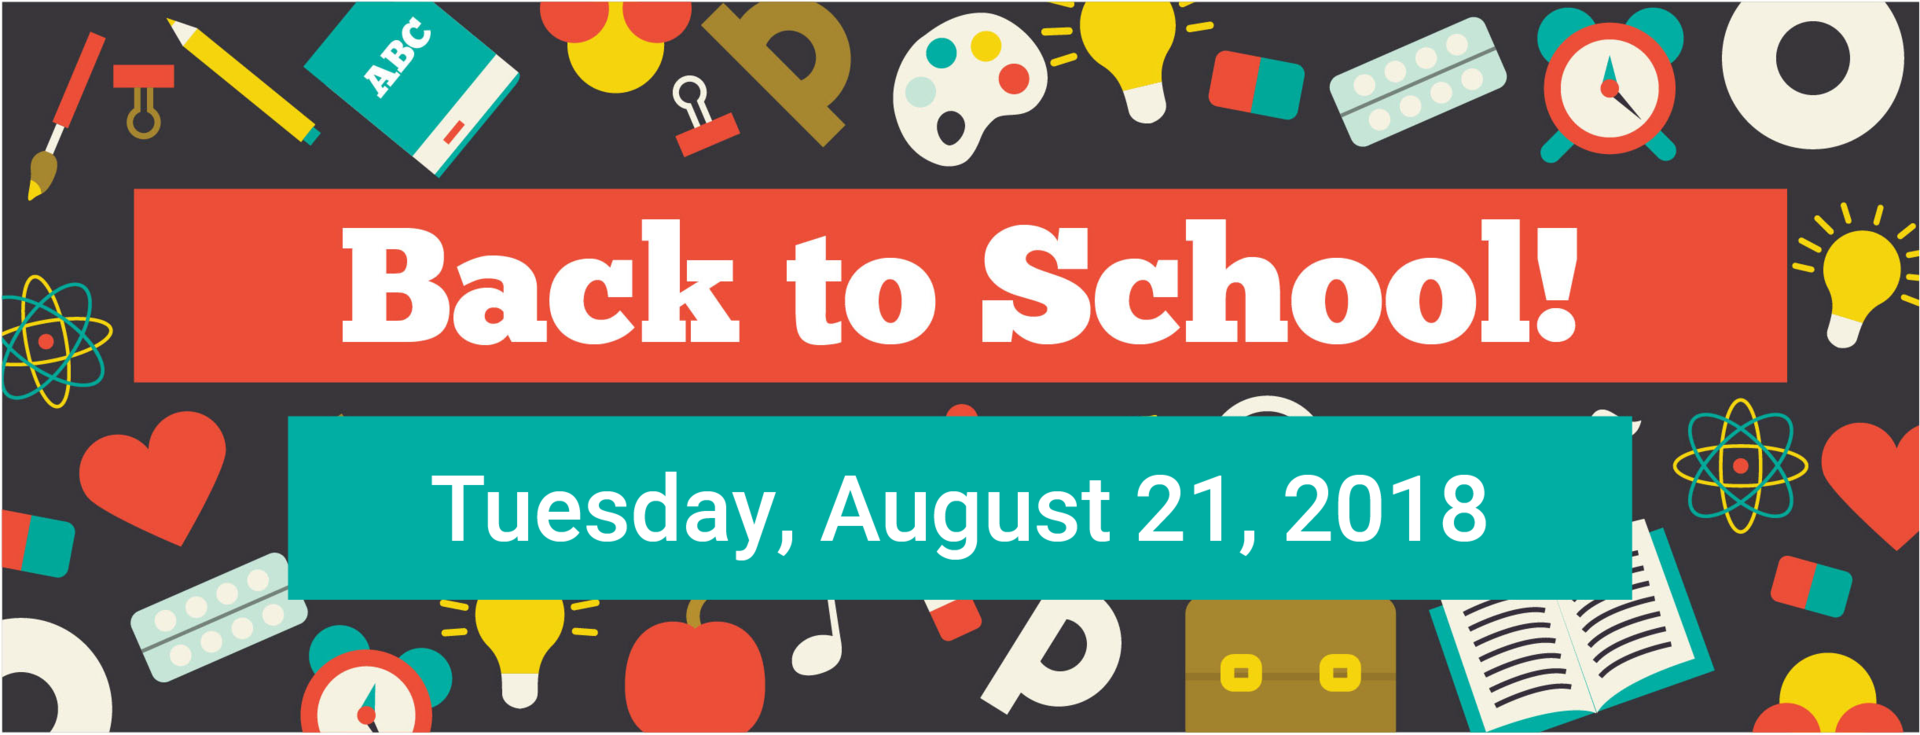 the first day of school for the 2018-2019 school year is tuesday august 21